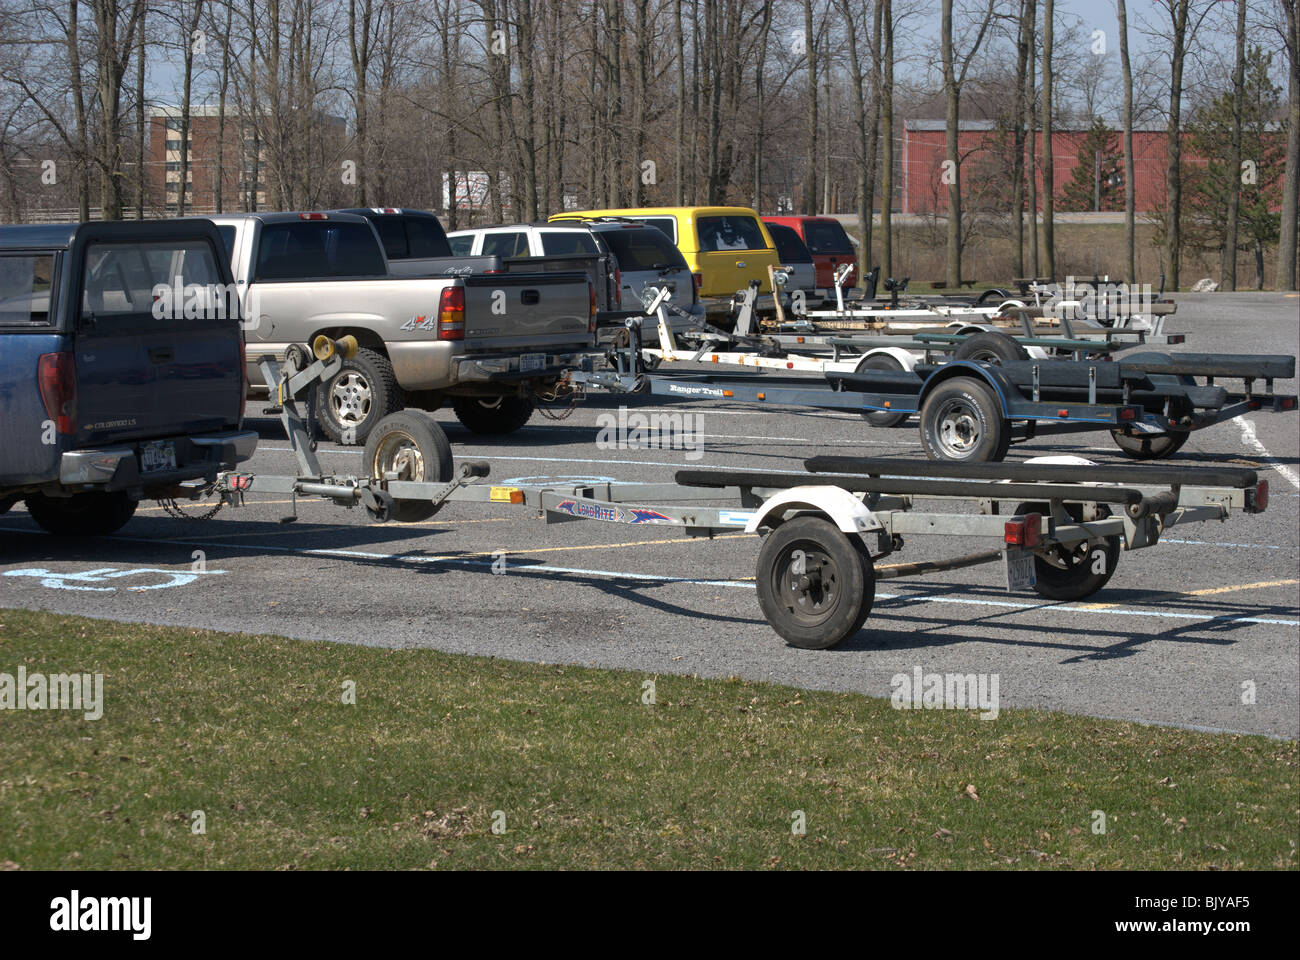 Boat Trailers parked at State launching for recreational boaters. - Stock Image